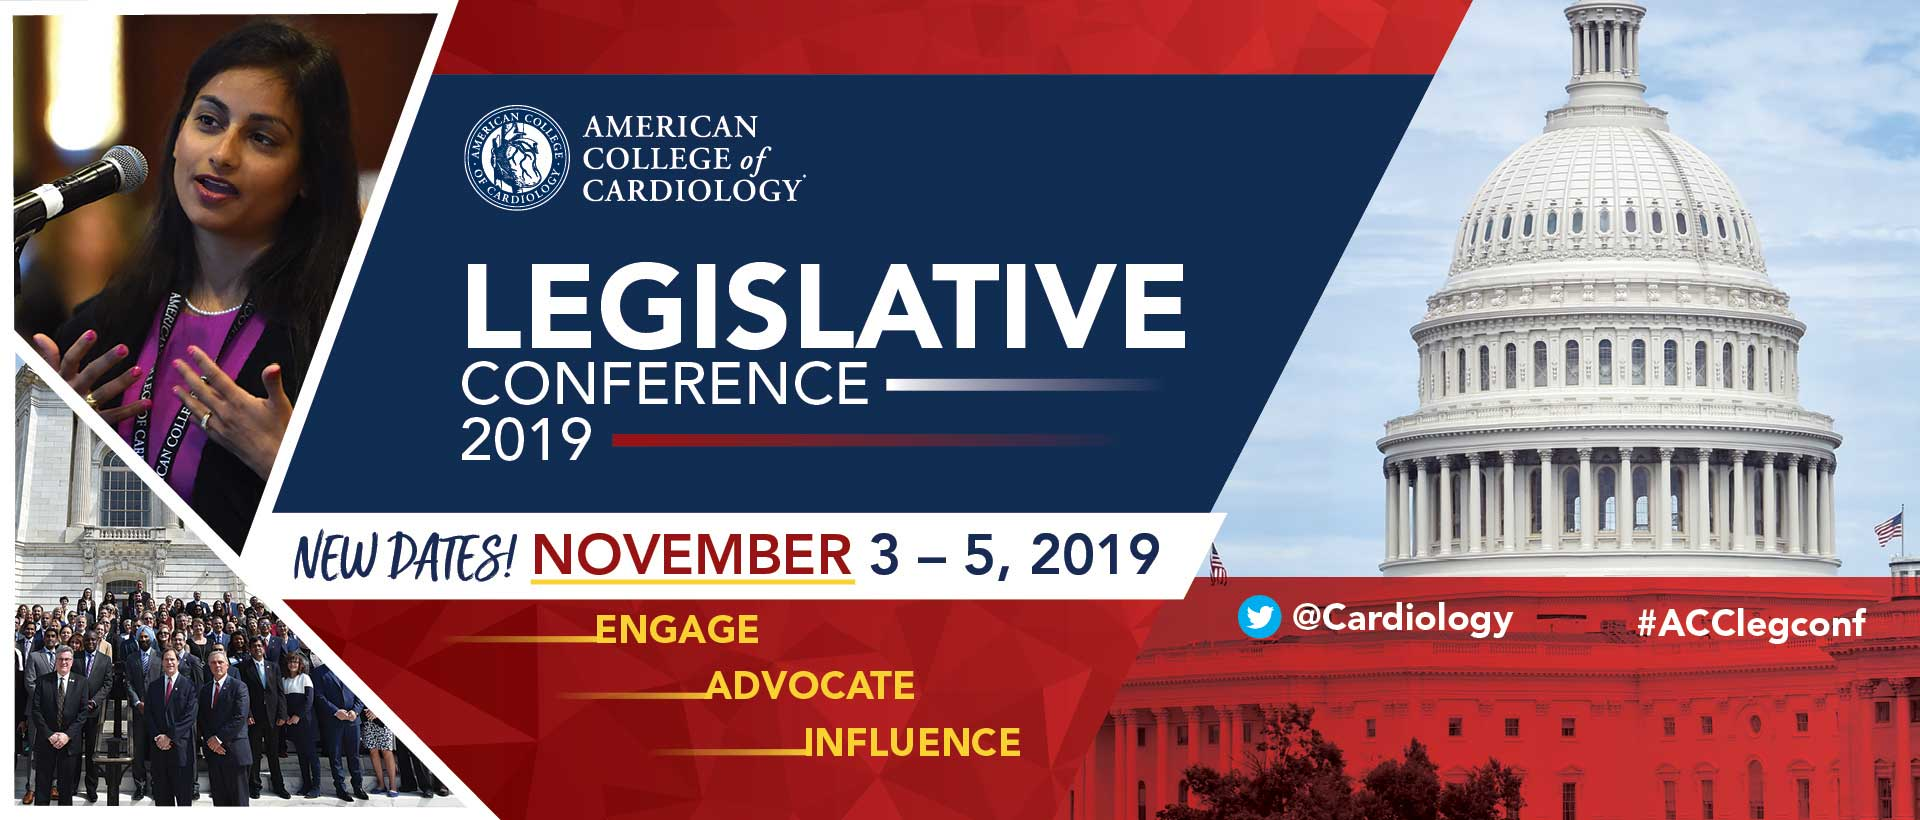 2019 American College of Cardiology Legislative Conference